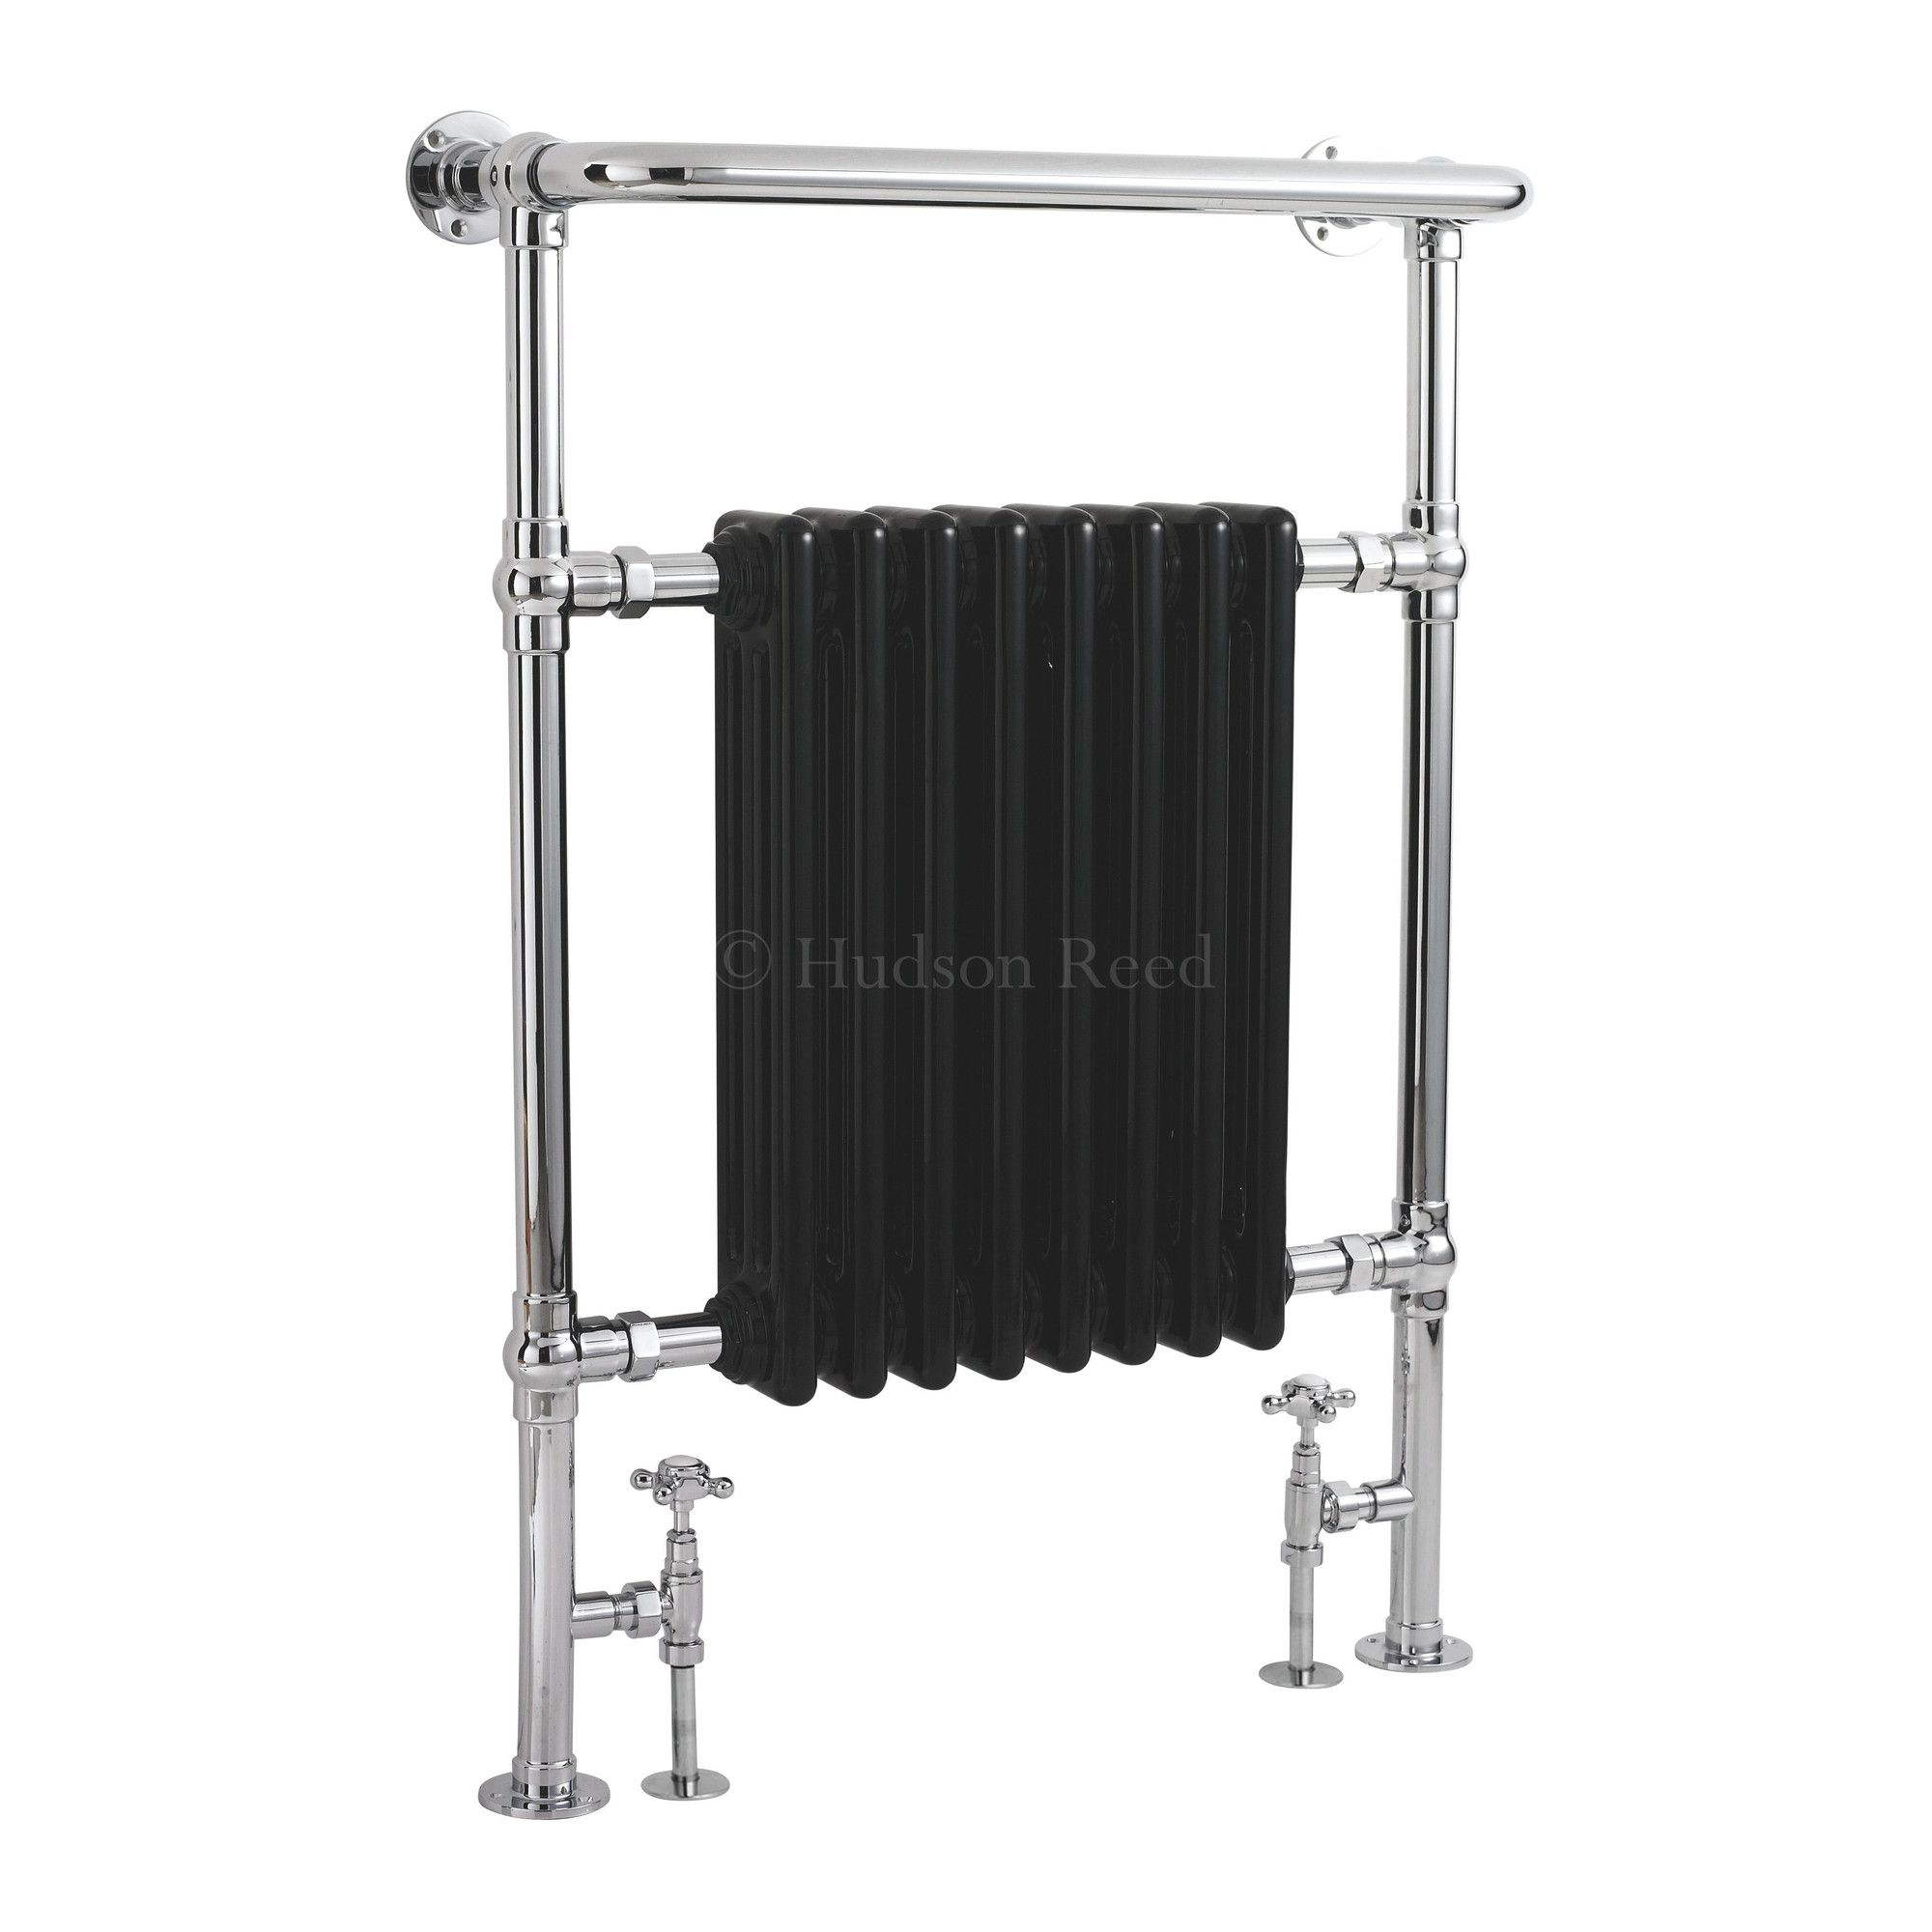 Hudson Reed Marquis Heated Towel Rail at Tesco Direct